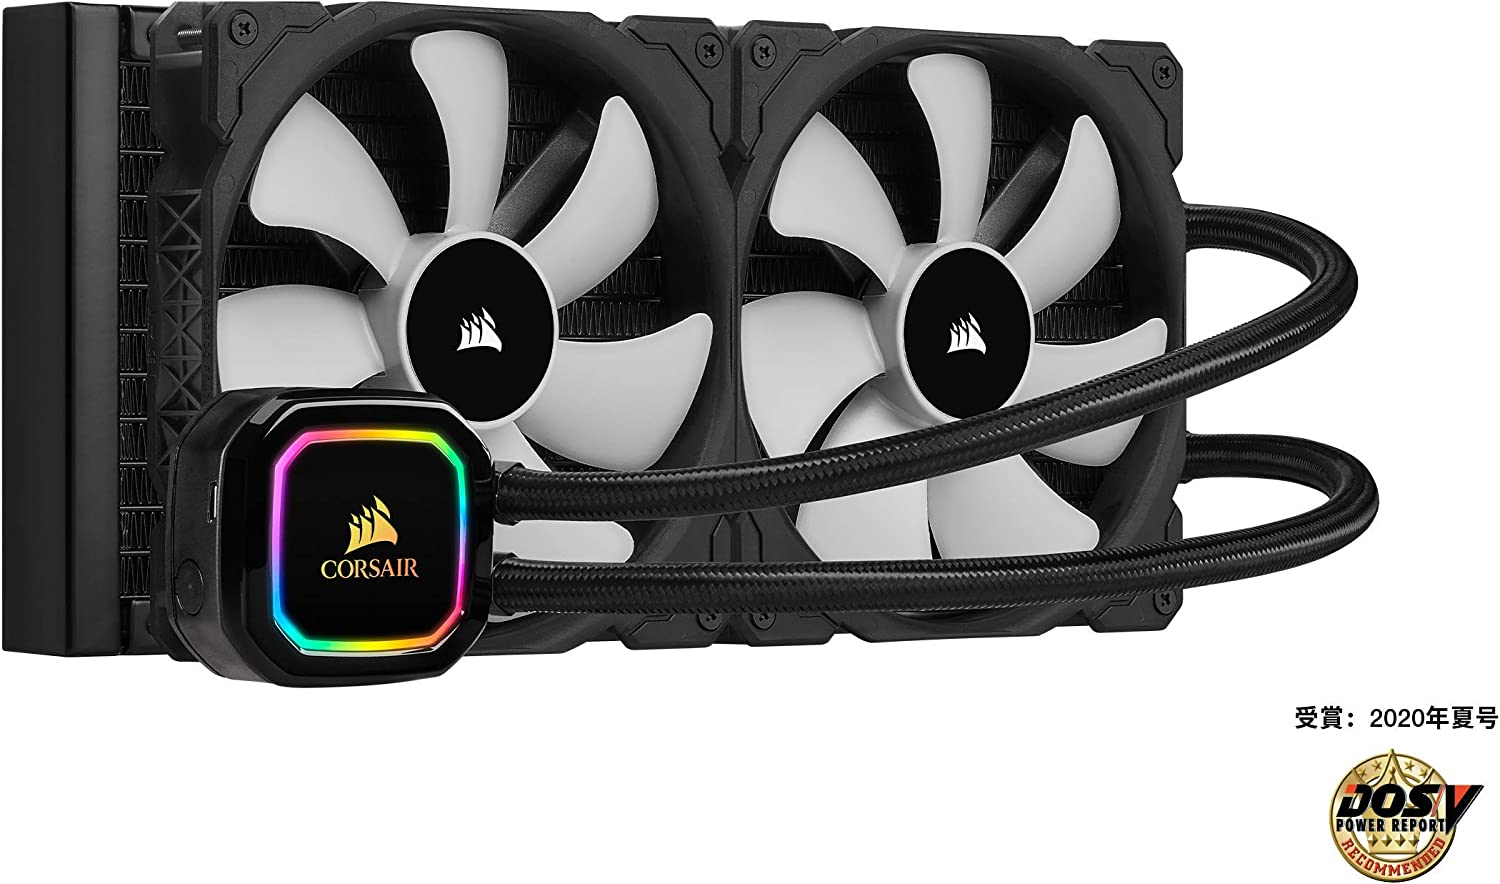 Corsair iCUE H115i RGB Pro XT 280mm Liquid CPU Cooler